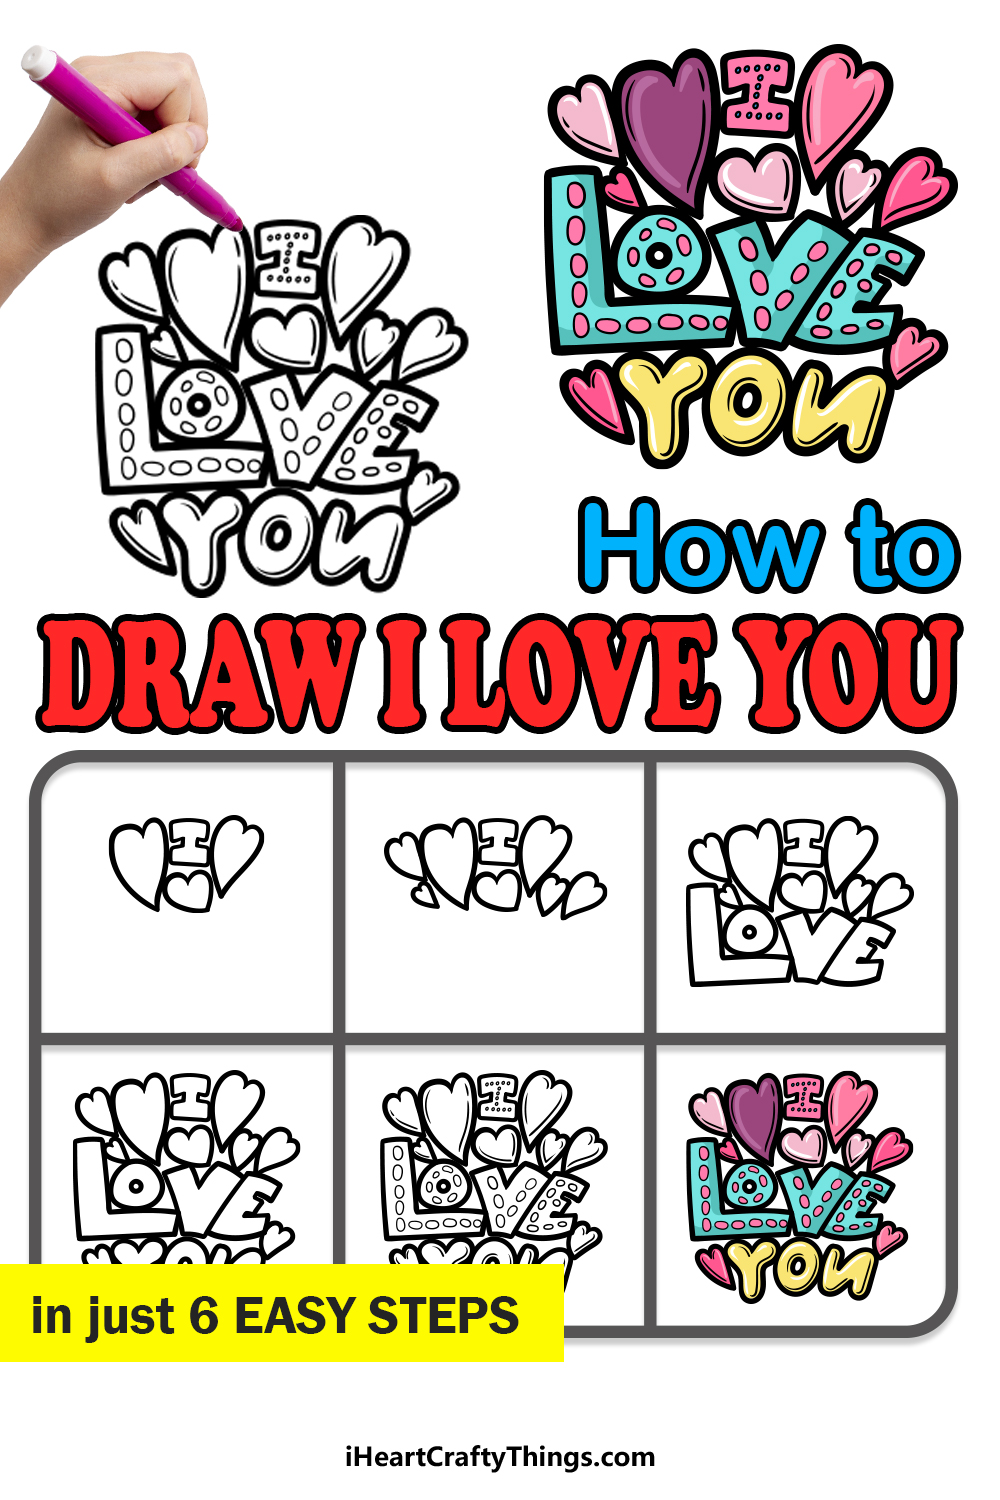 how to draw I Love You in 6 easy steps